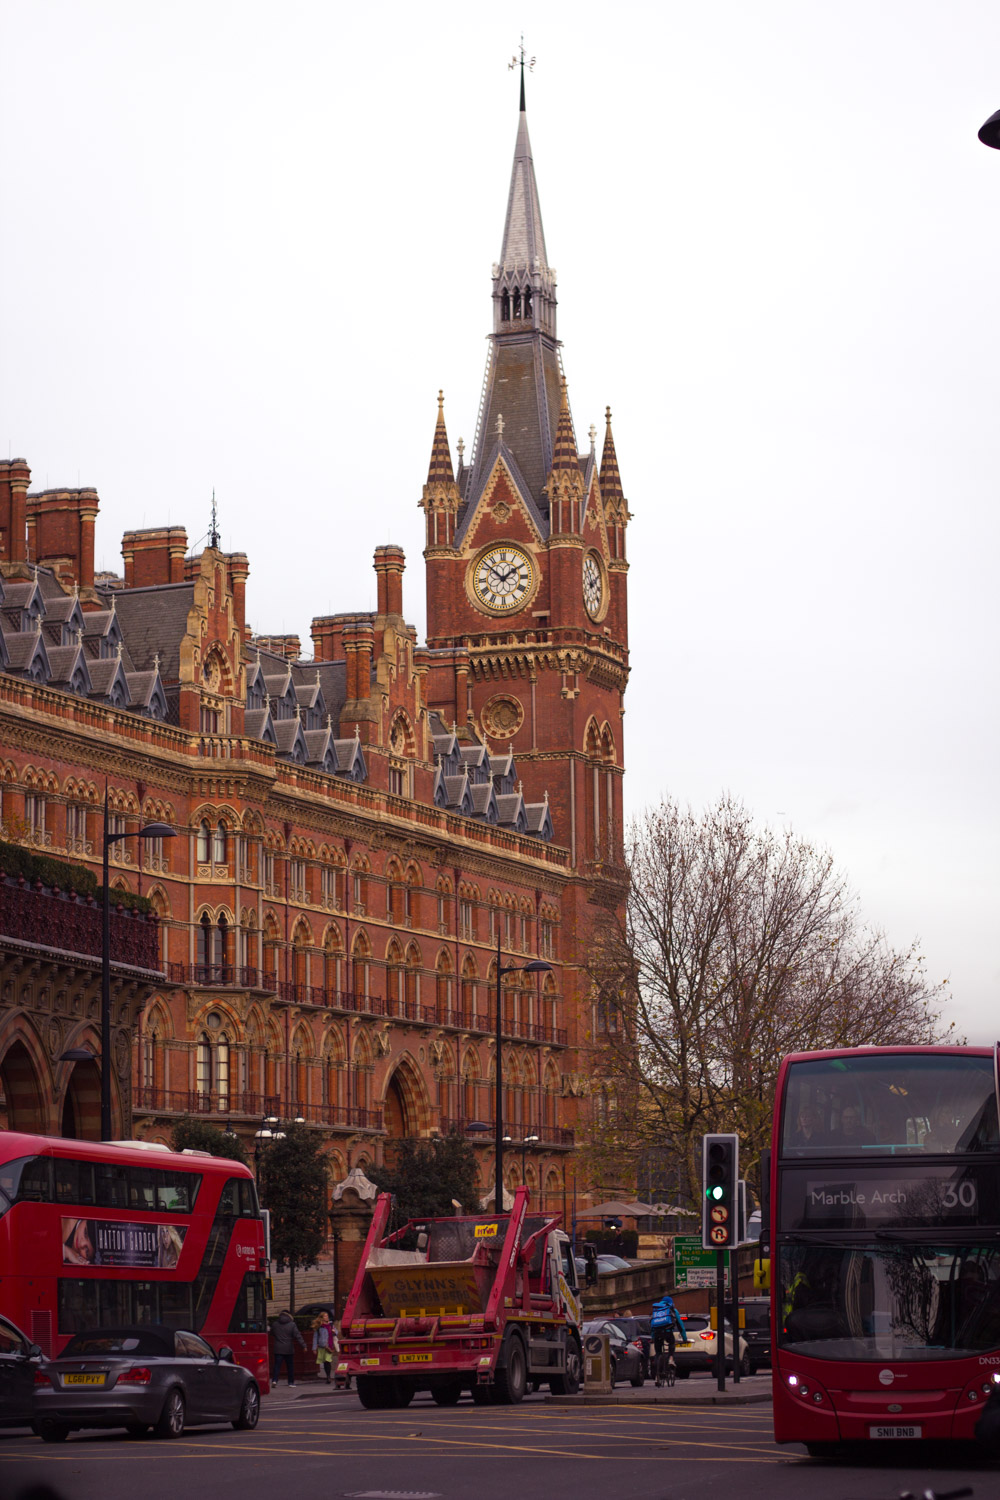 St Pancras railway station in London for Christmas